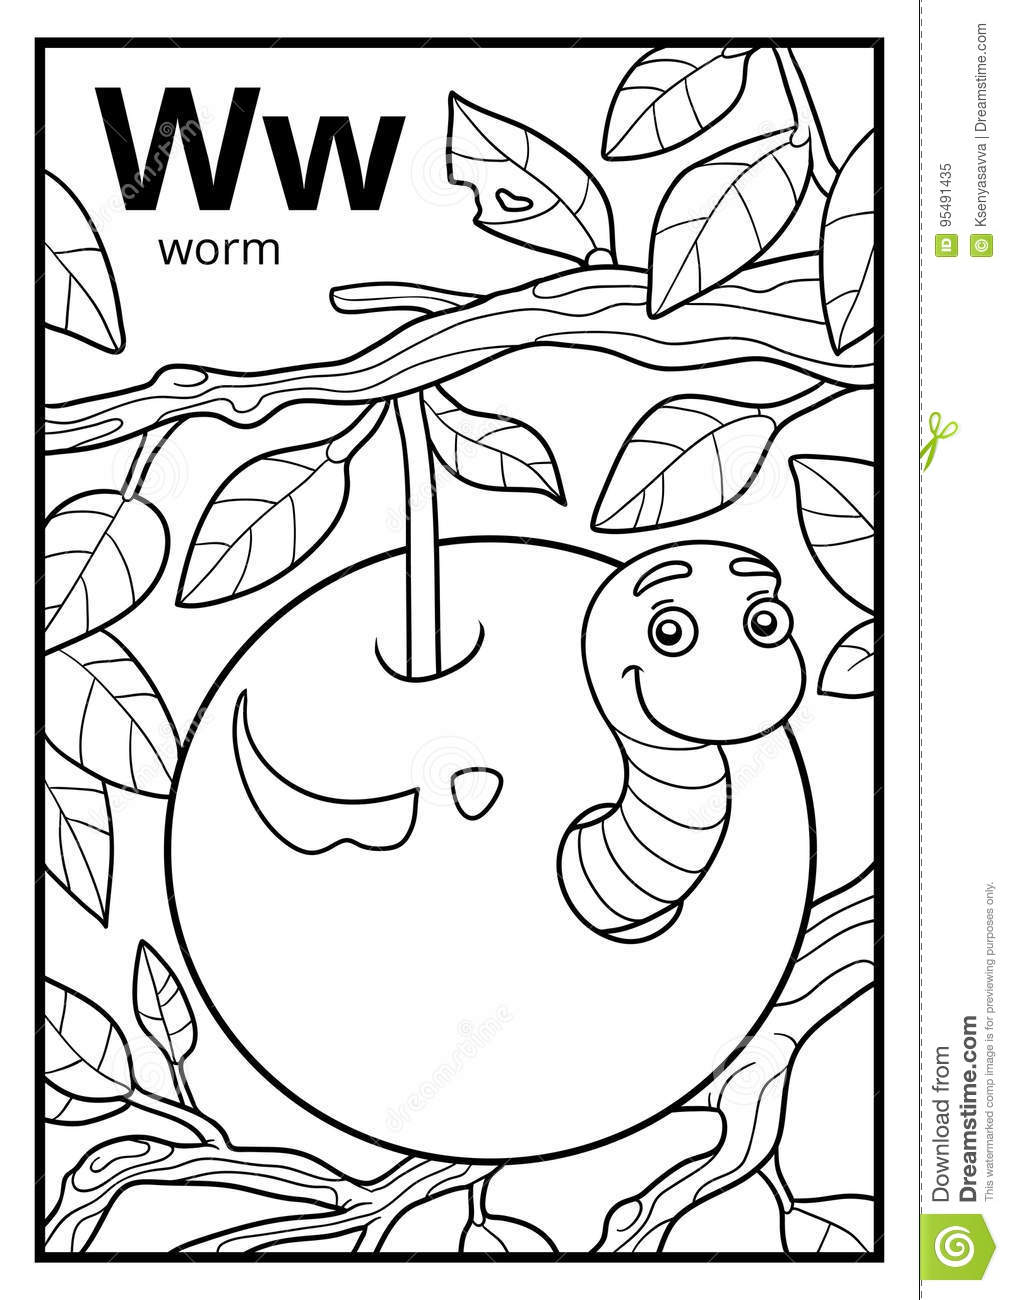 w is for worm coloring page worm is for letter w coloring page bulk color in 2020 worm w coloring page for is